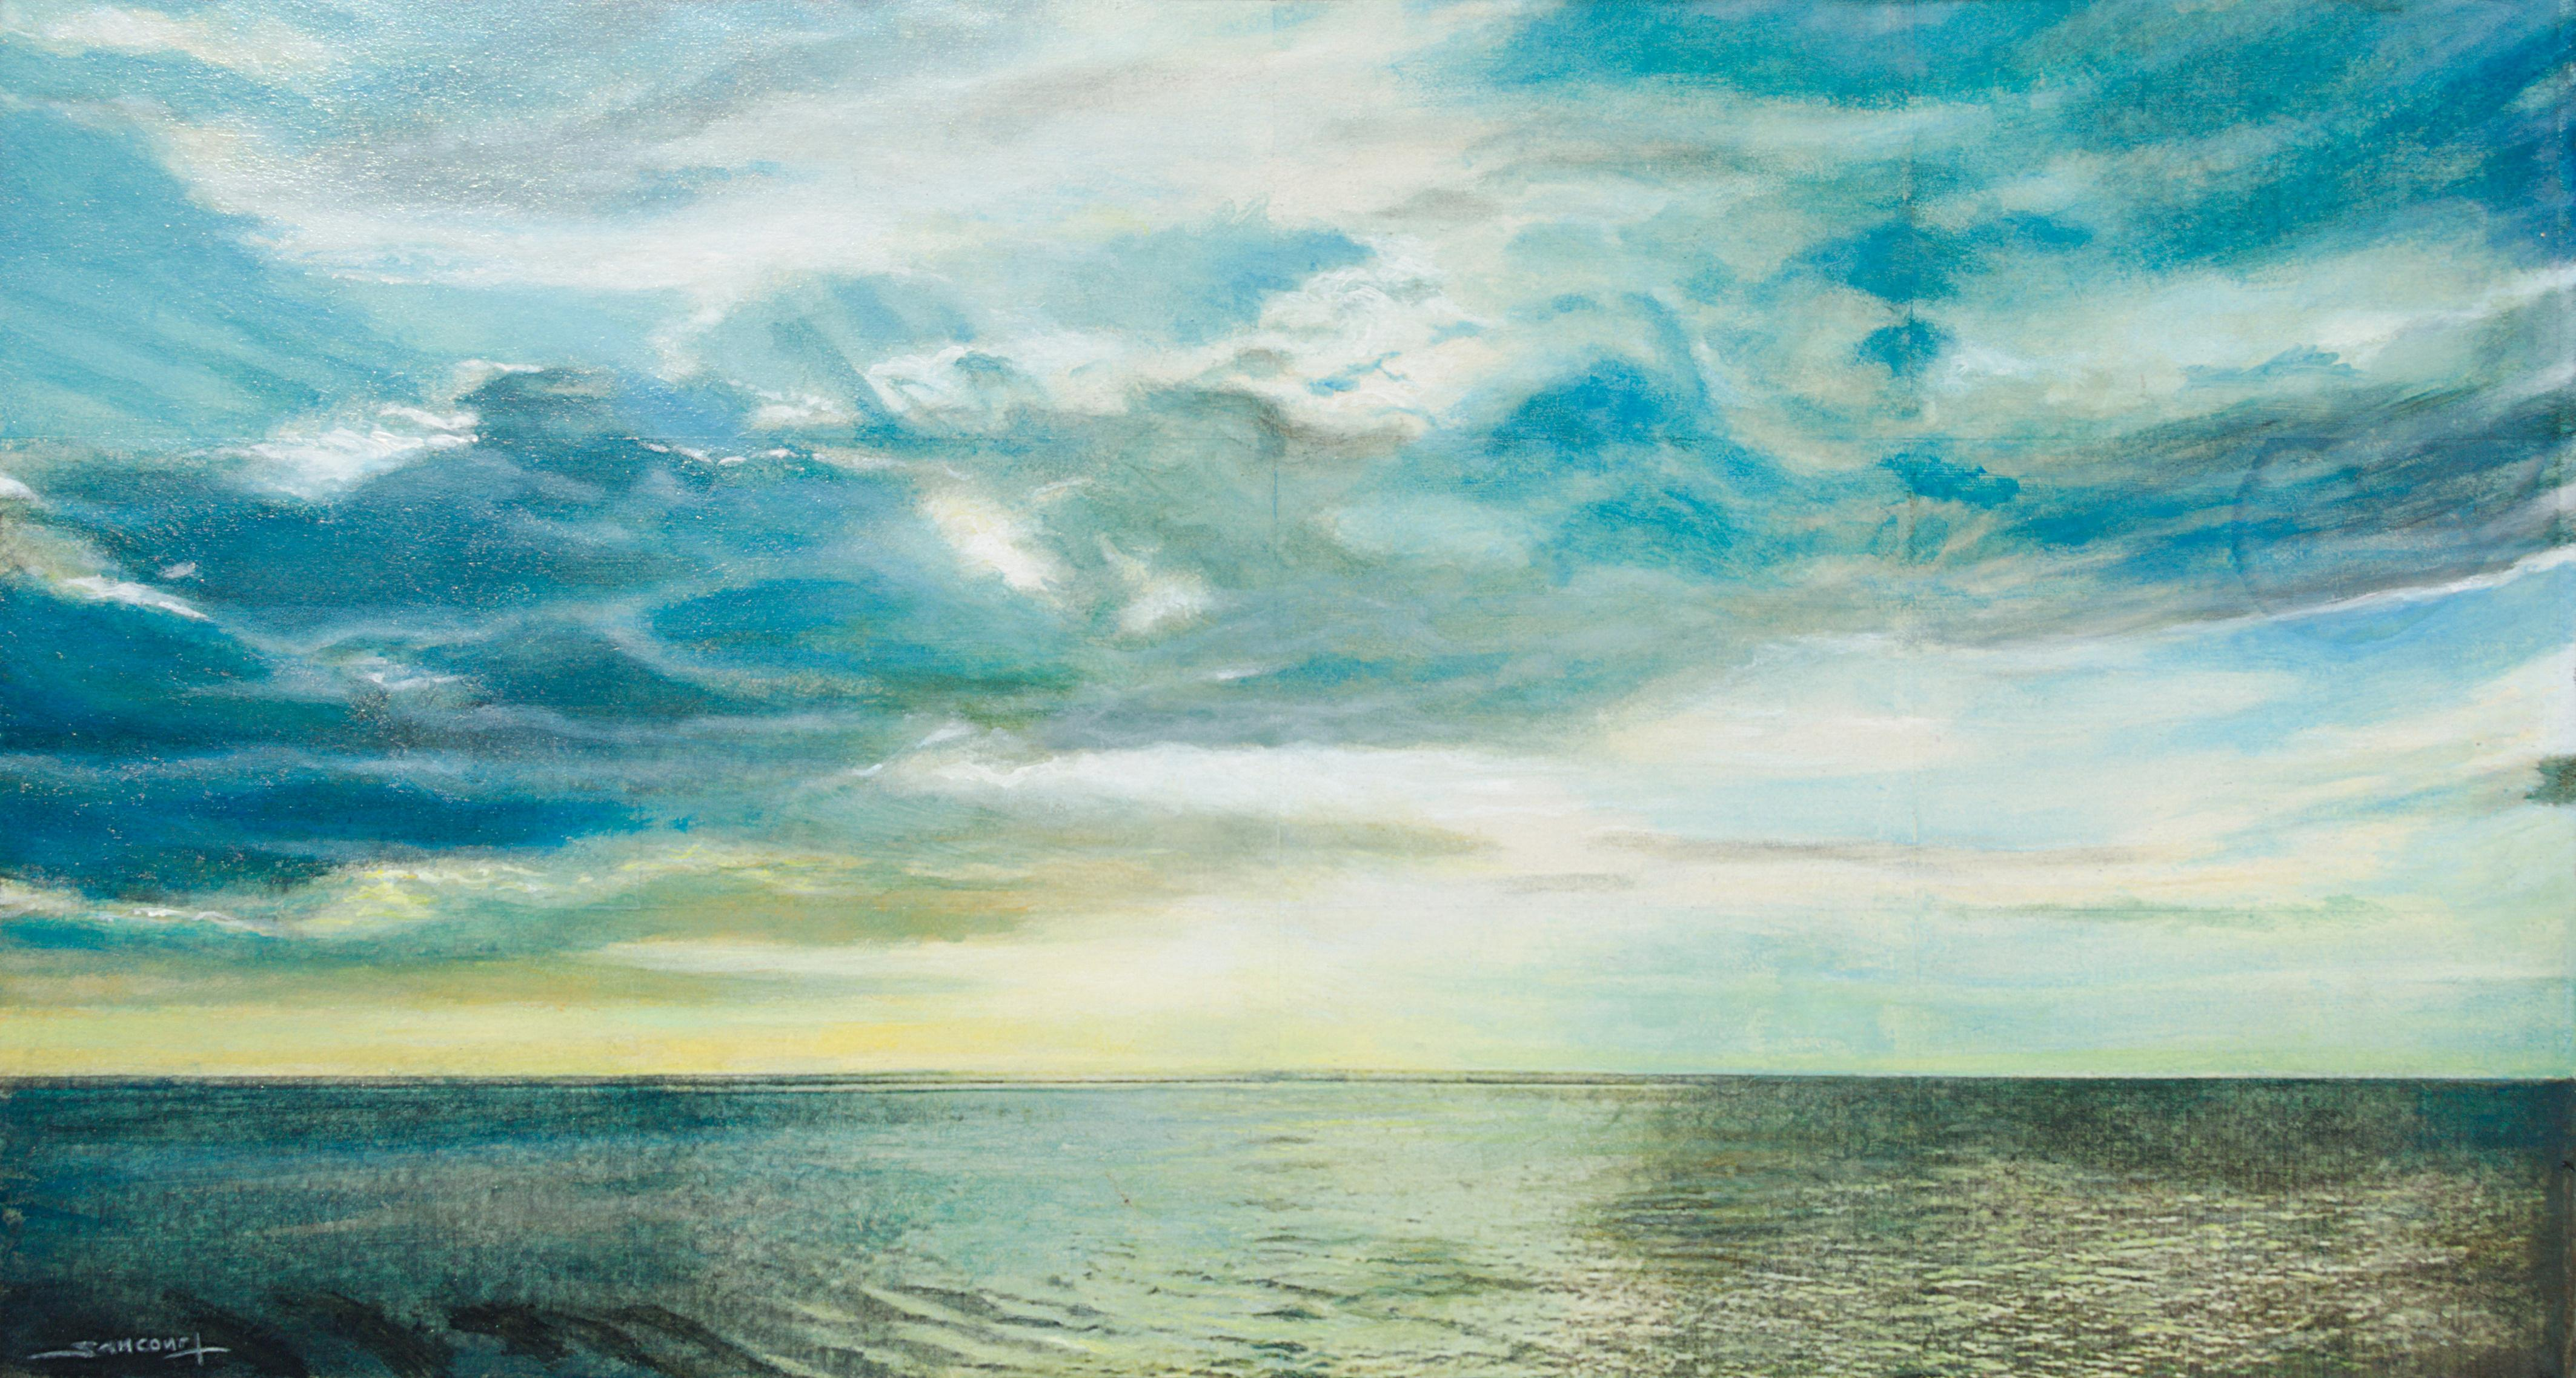 """""""Seaside #27"""", Sea, Clouds and Sun Marine Landscape Mixed Media Painting"""